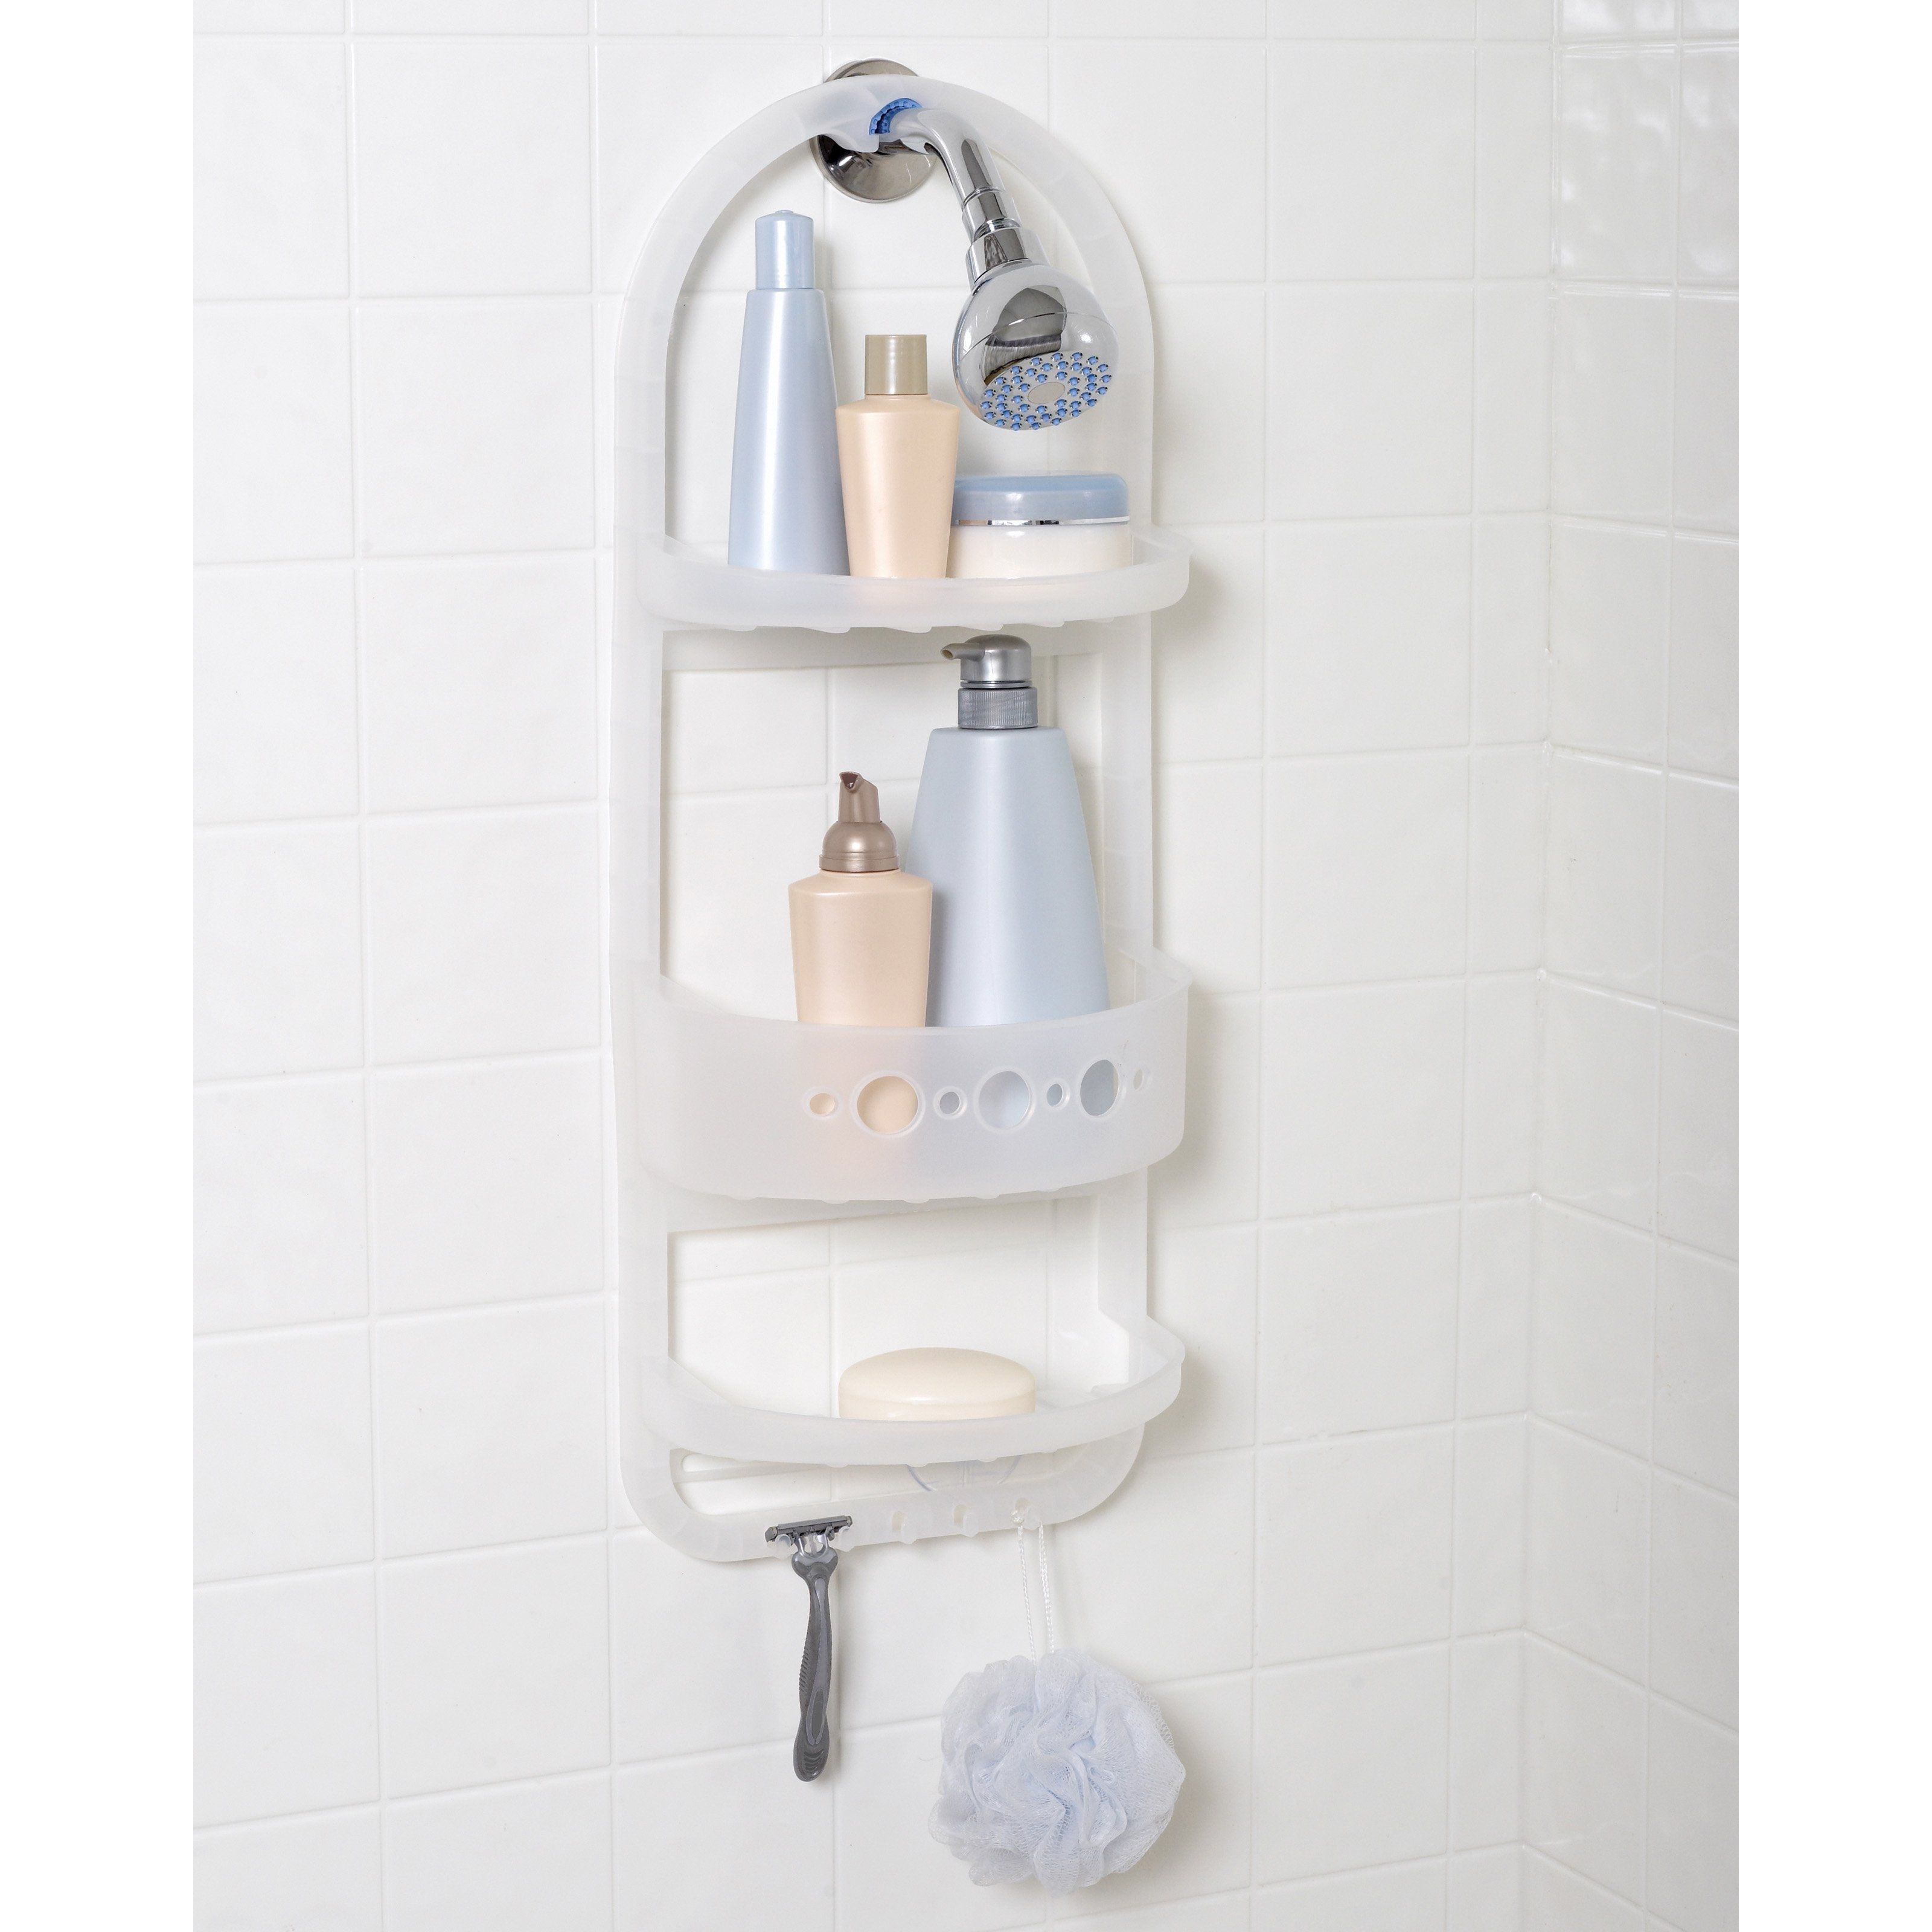 White Plastic Hanging Shower Caddy | Bathroom Utensils | Pinterest ...